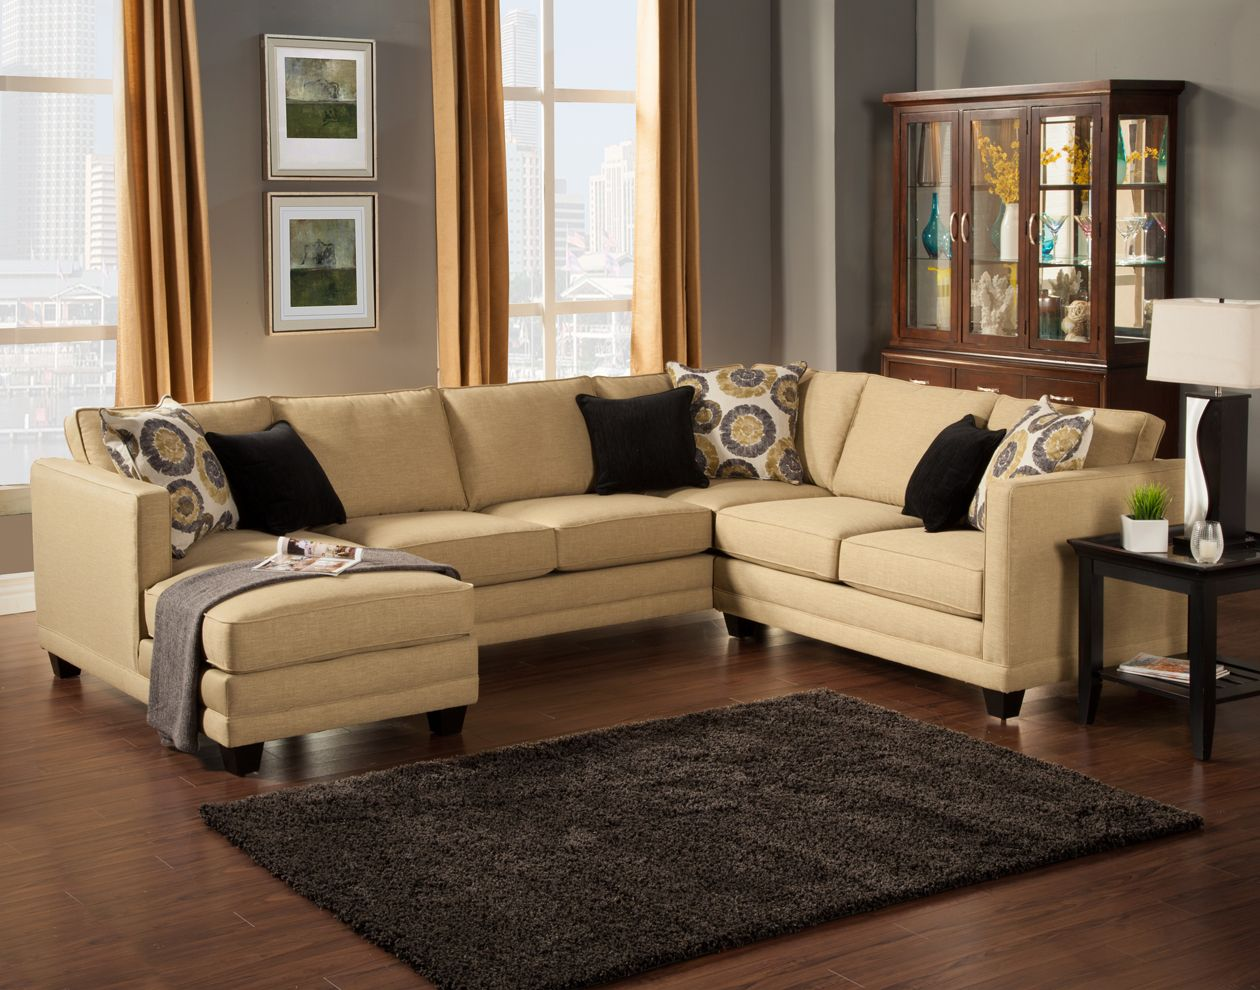 3 pc oasis collection willow color fabric upholstered sectional sofa with square arms and chaise